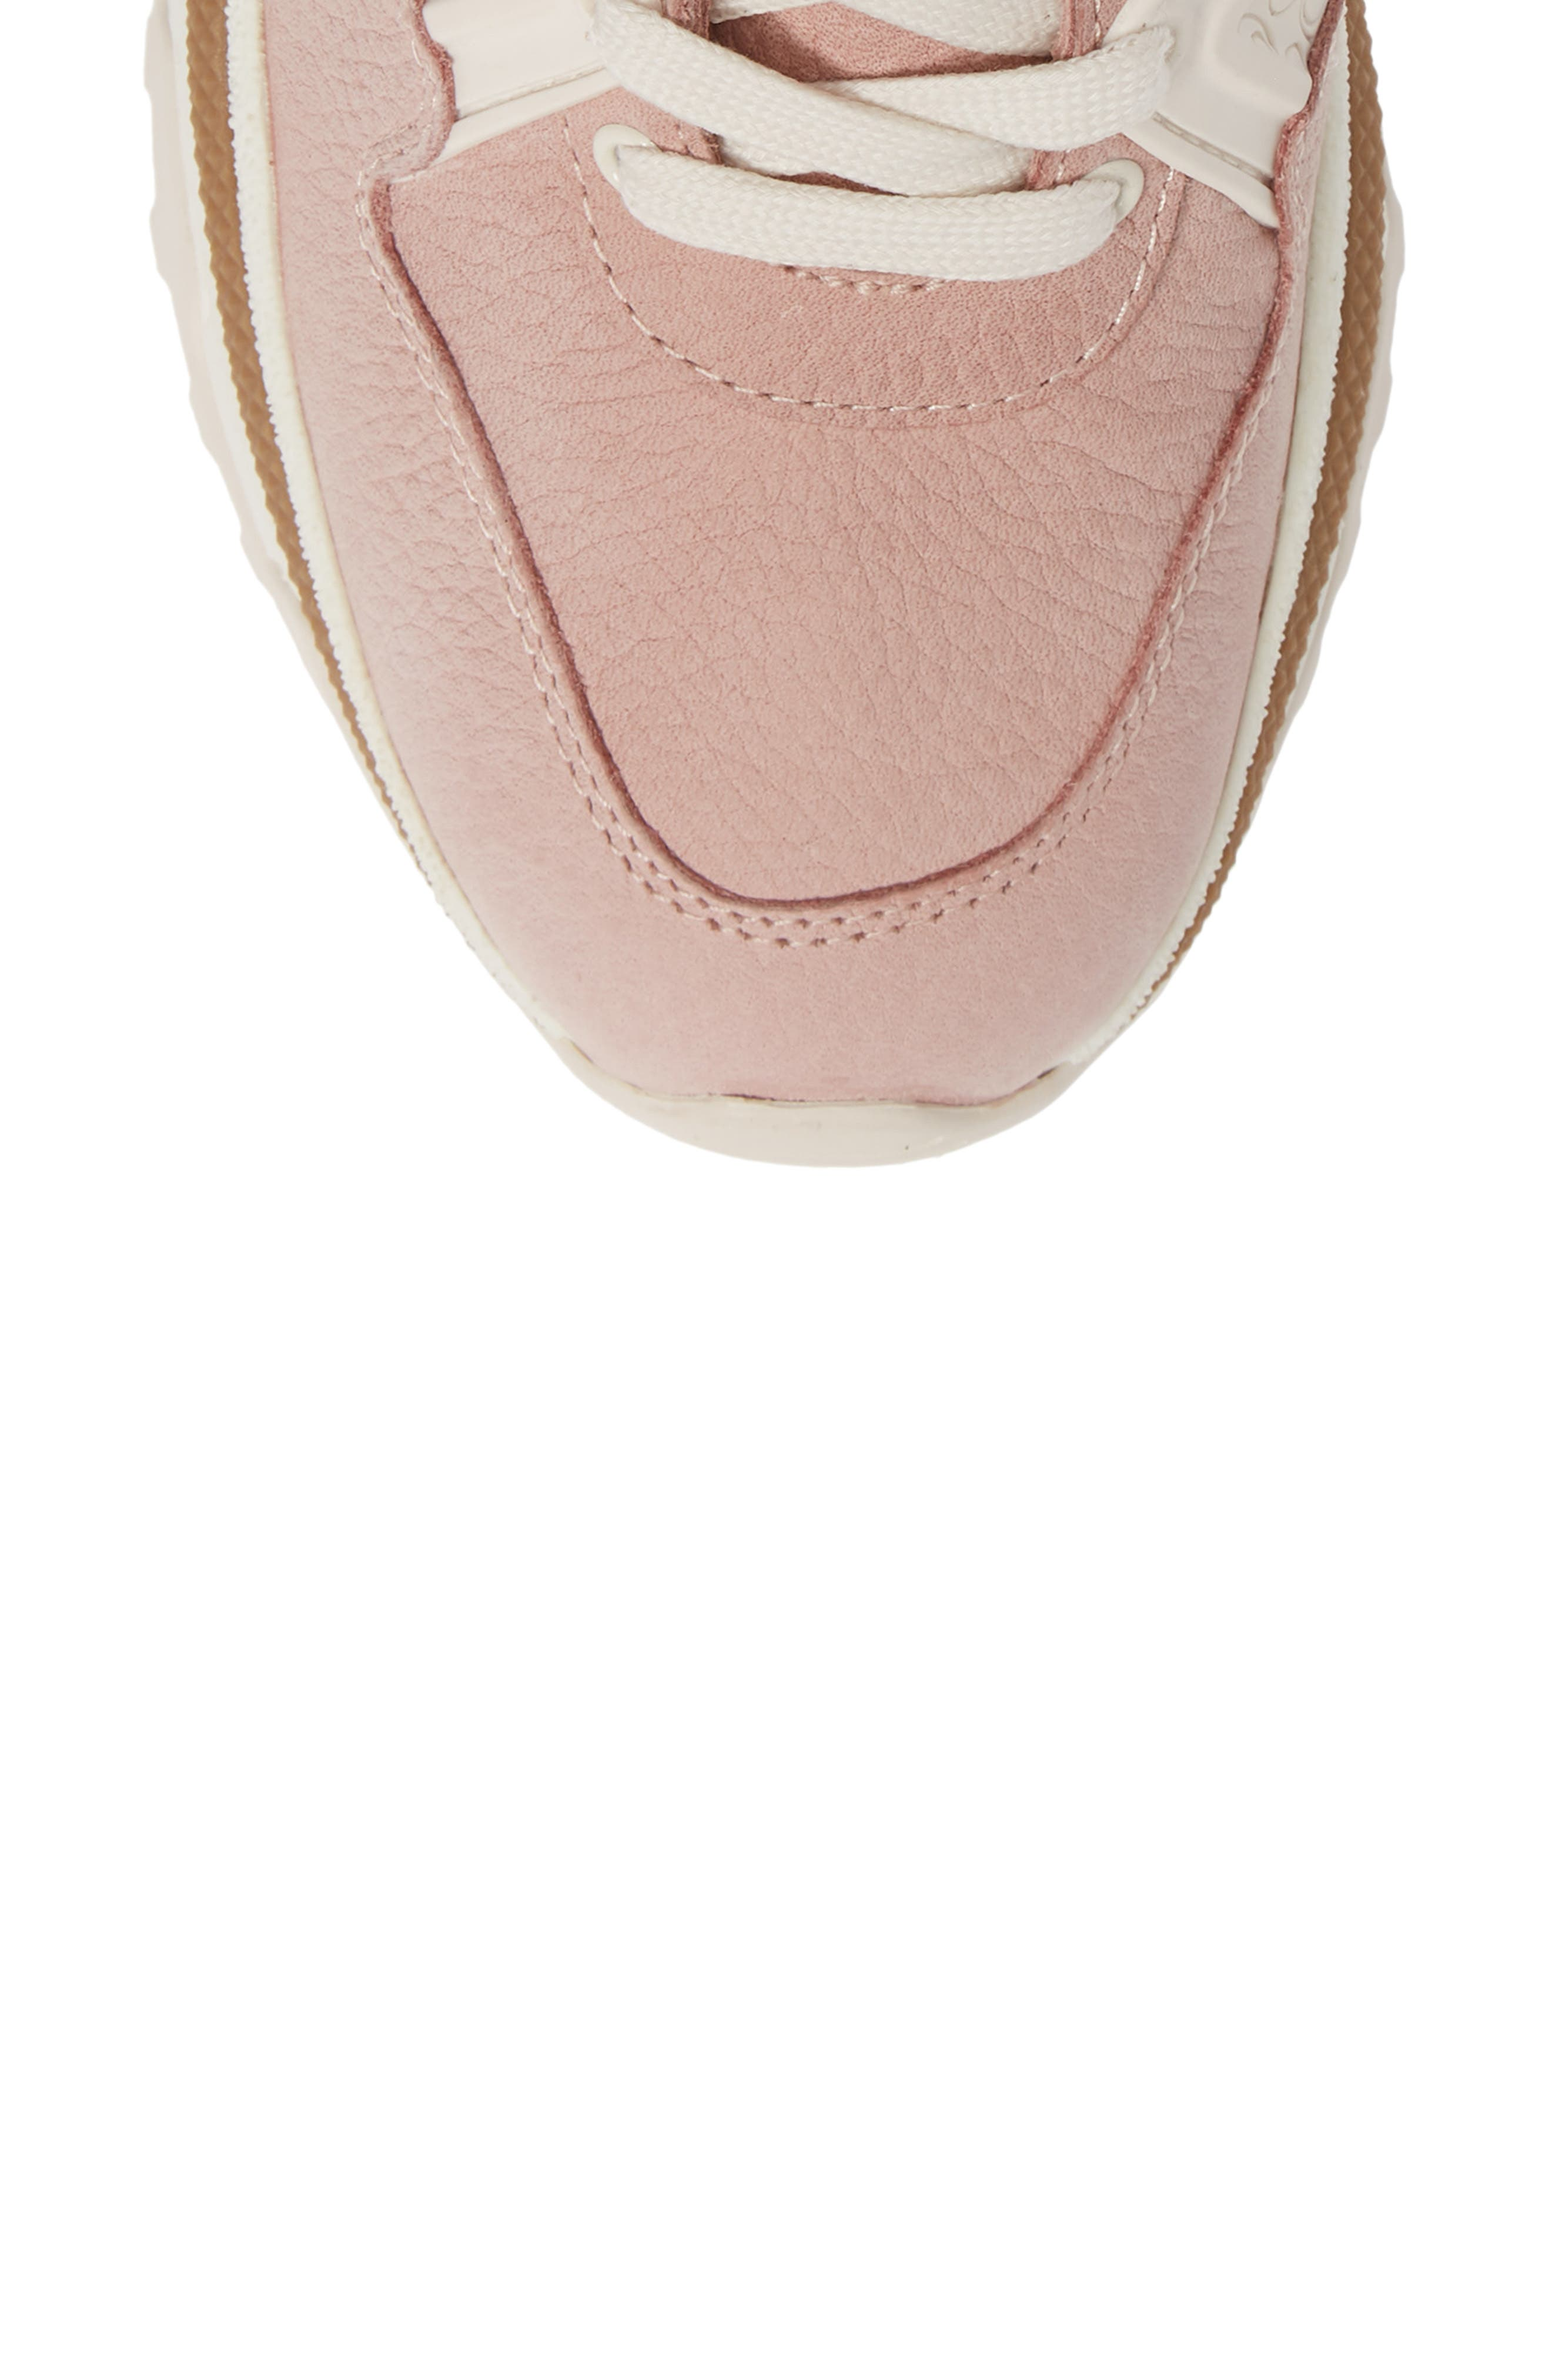 COACH,                             High Top Sneaker,                             Alternate thumbnail 5, color,                             BLUSH PINK NUBUCK LEATHER